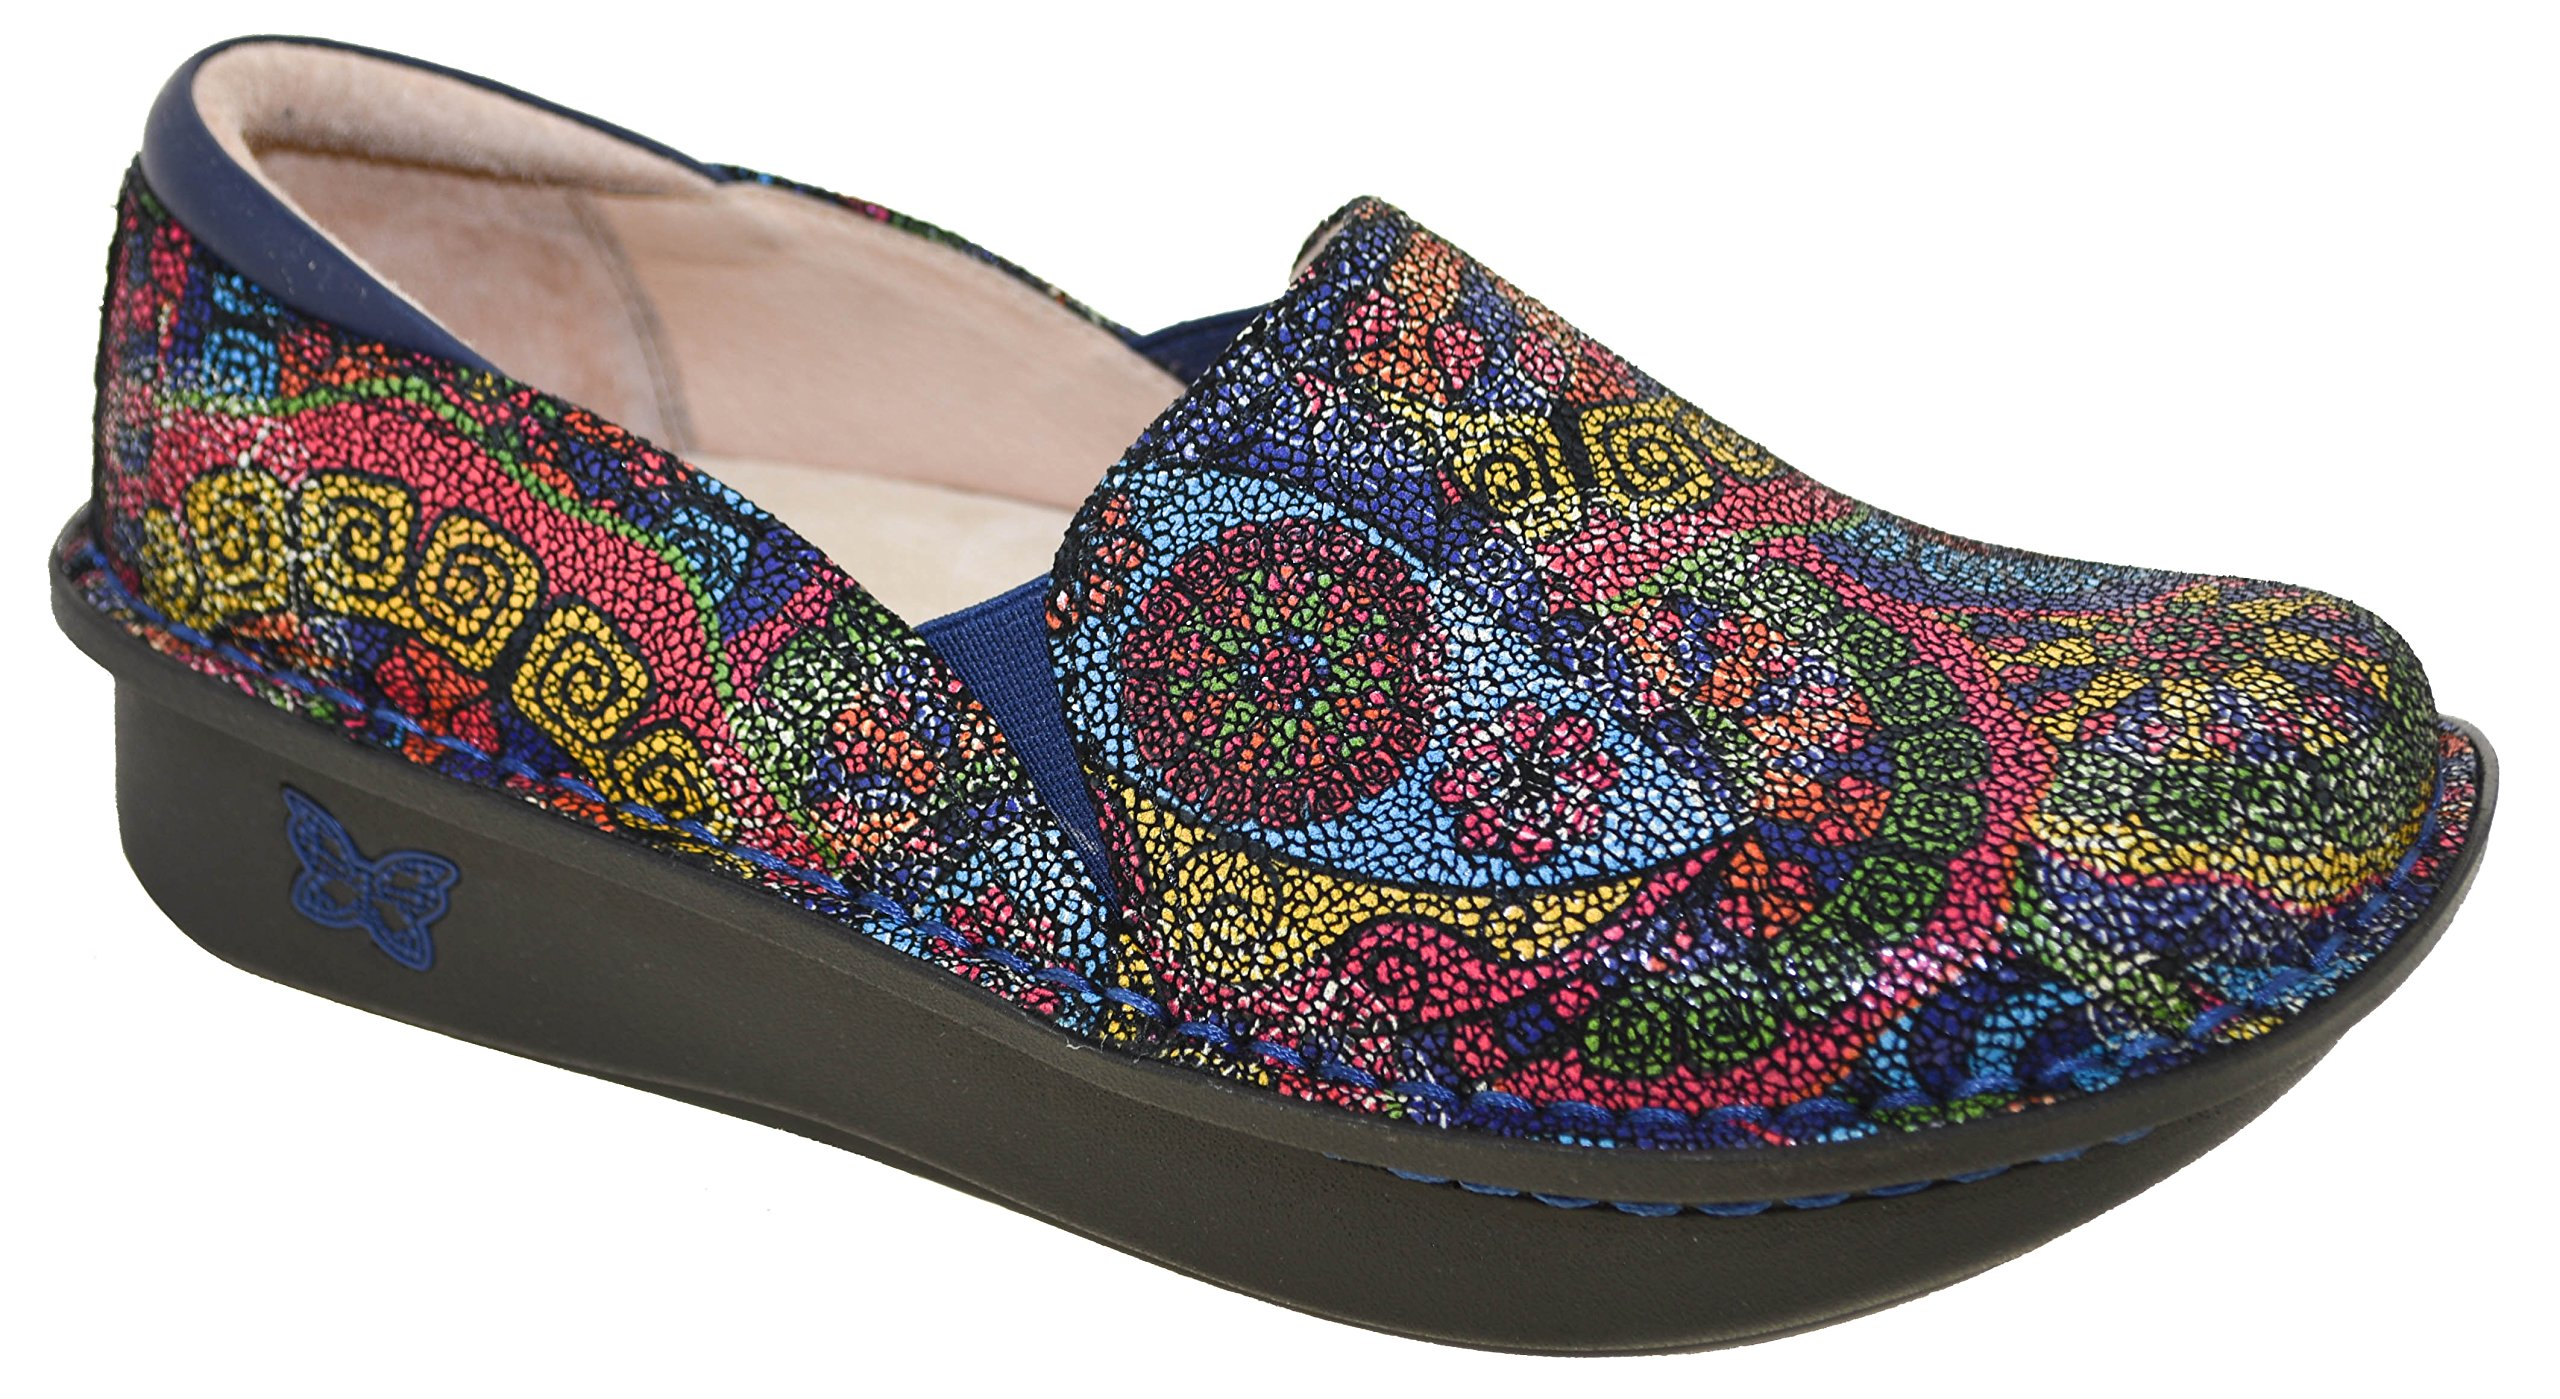 Alegria Women's Debra Professional Shoes Psychfest Style DEB-141, 44